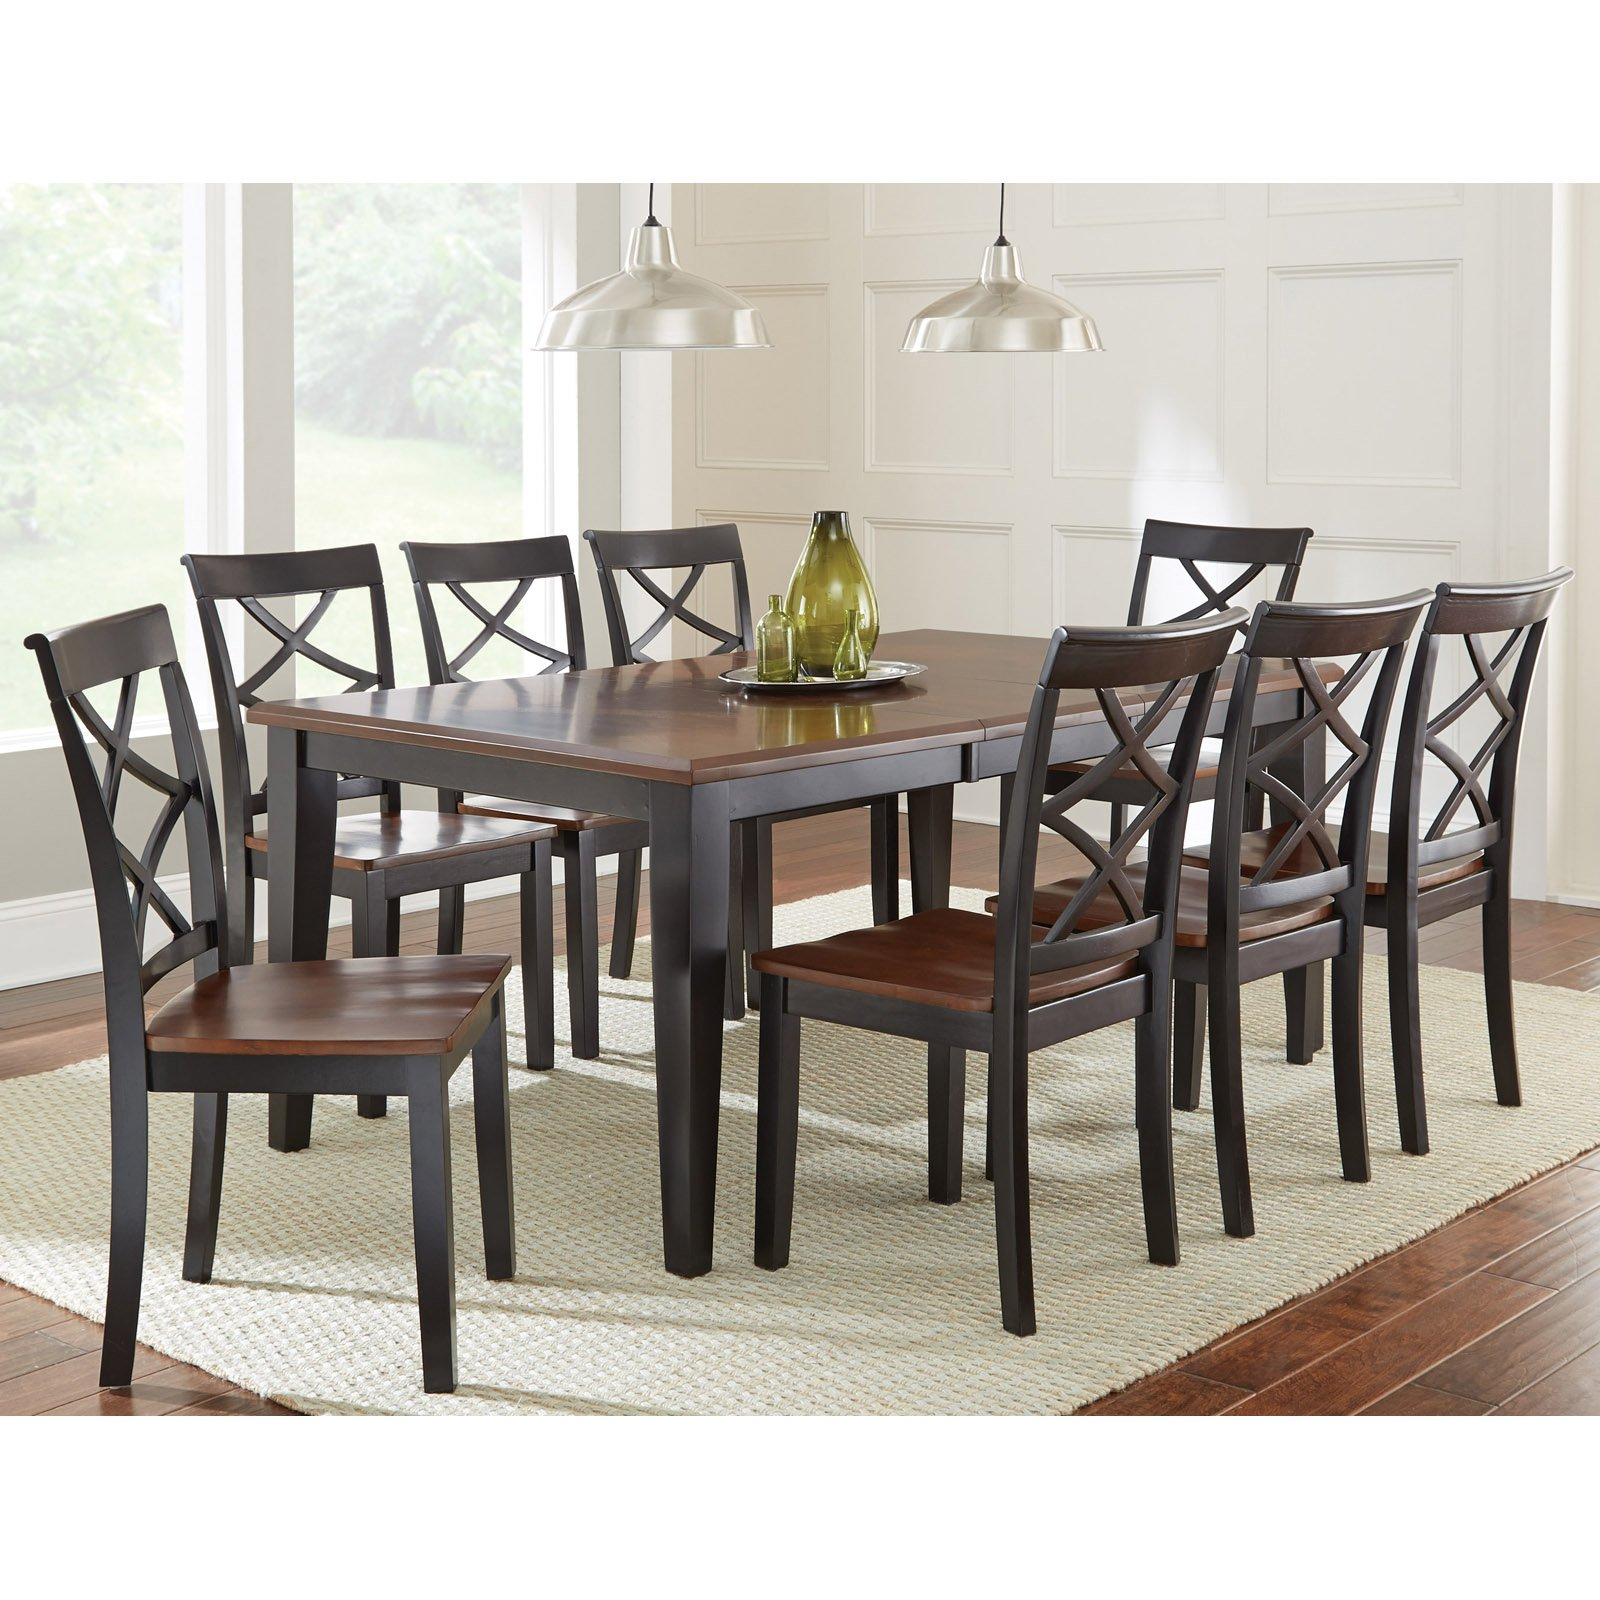 Incroyable Steve Silver Rani 9 Piece Dining Table Set   Walmart.com